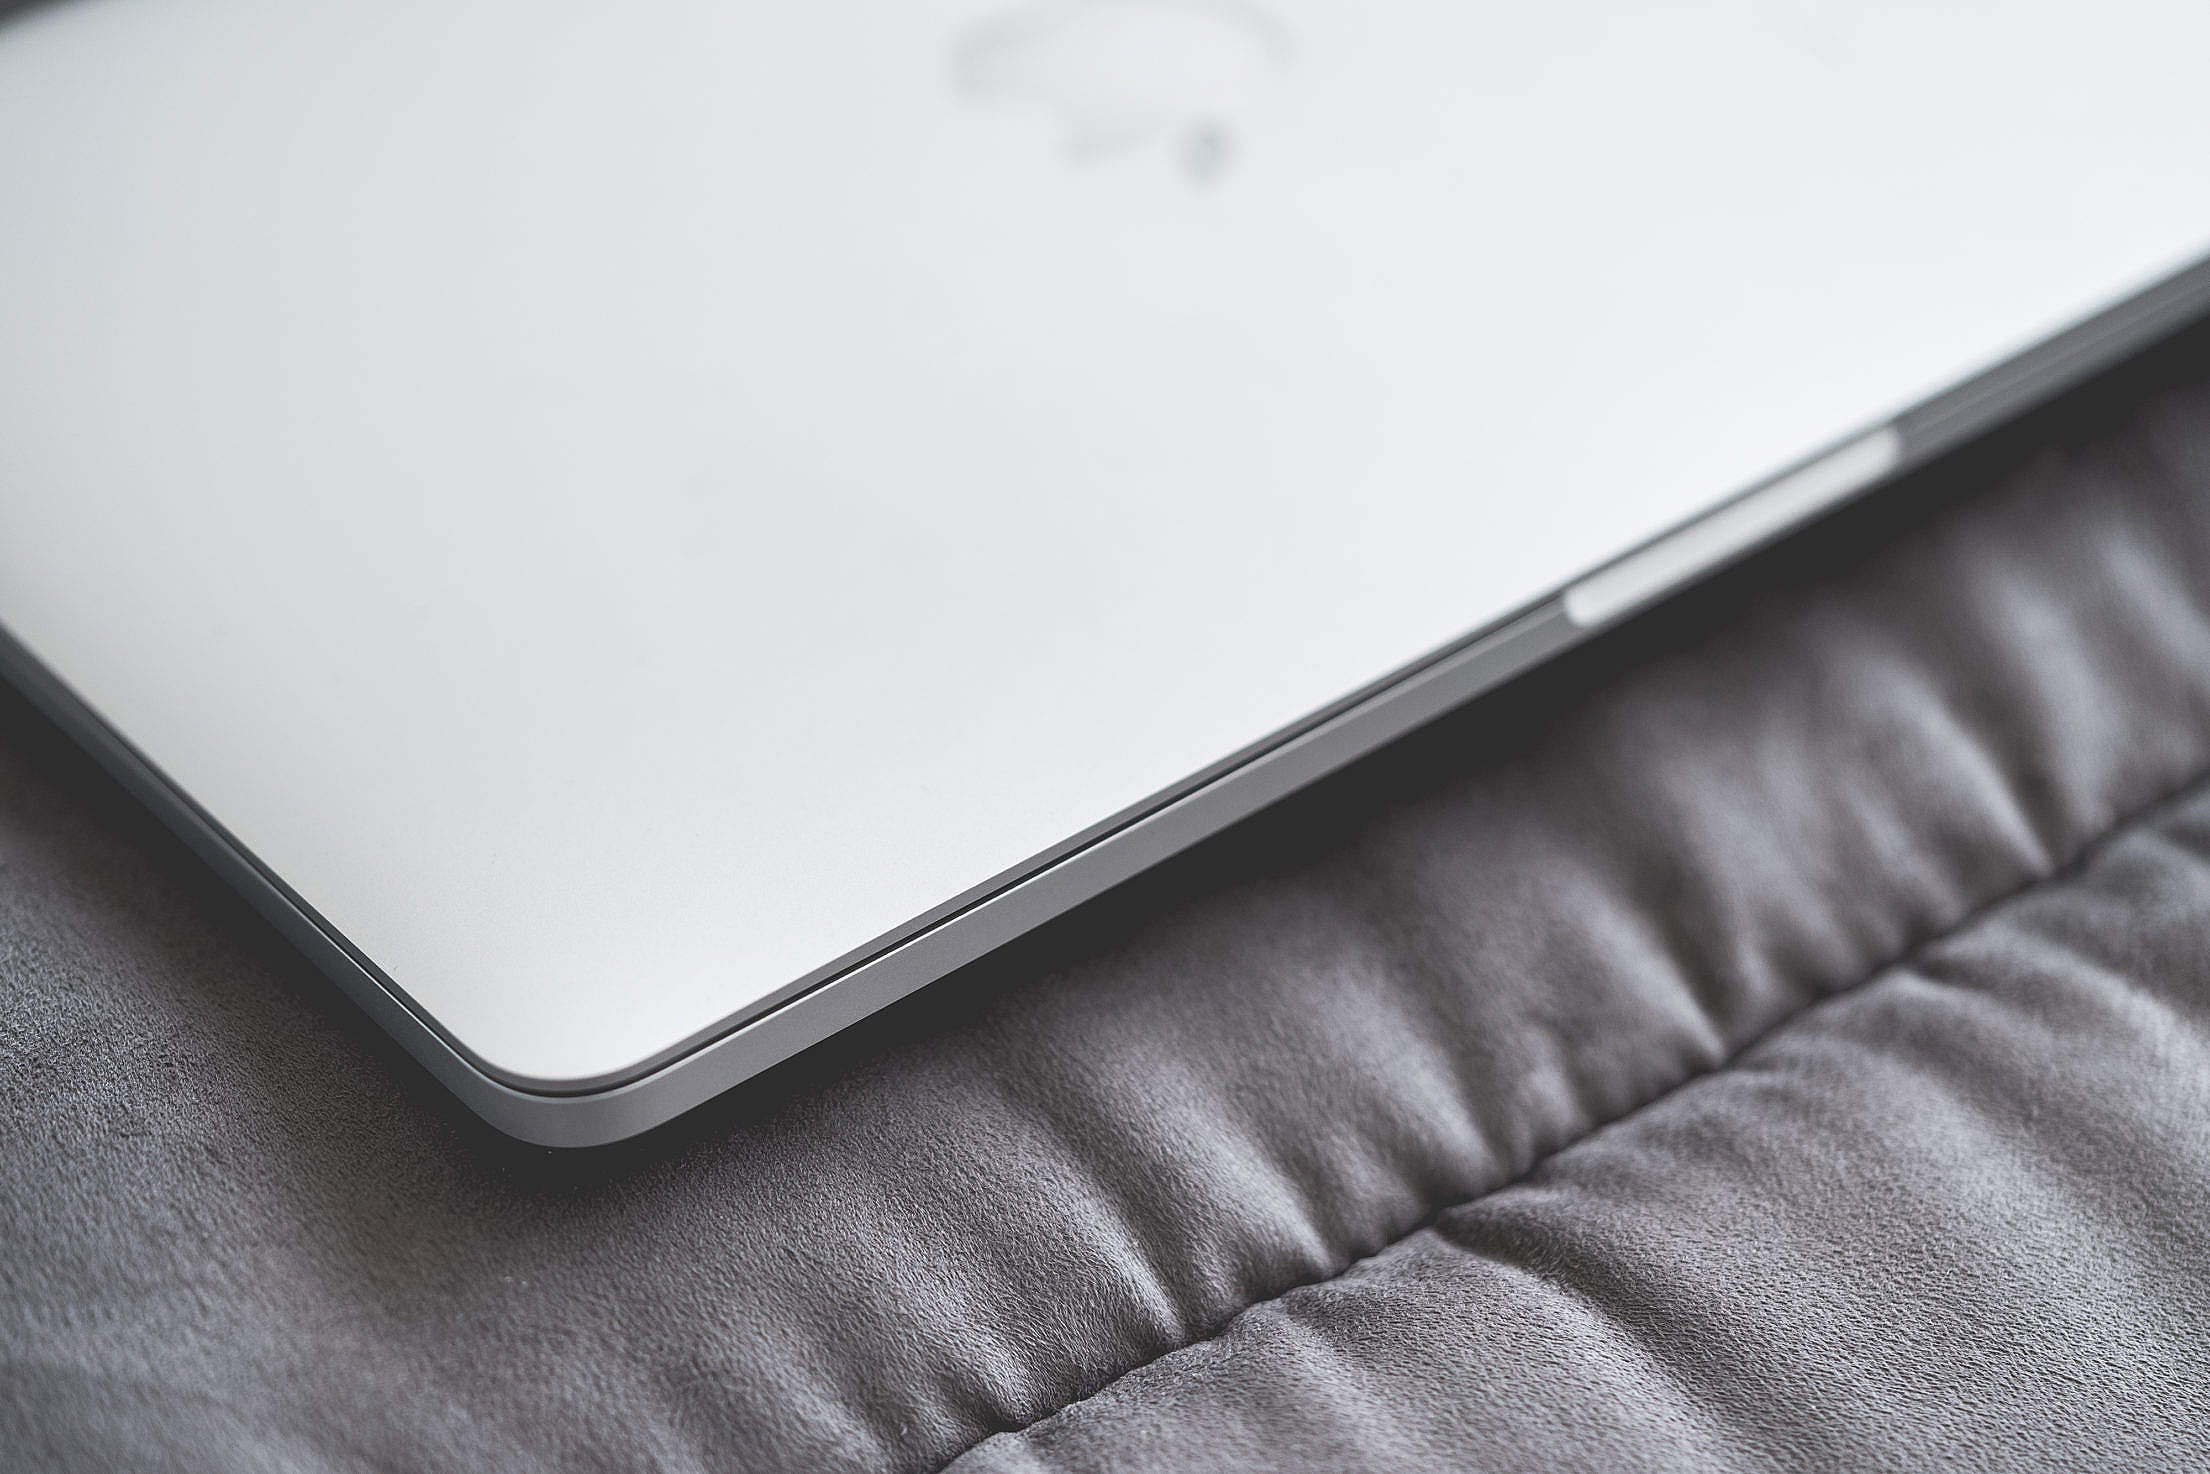 Closed Macbook Laptop on a Sofa #2 Free Stock Photo